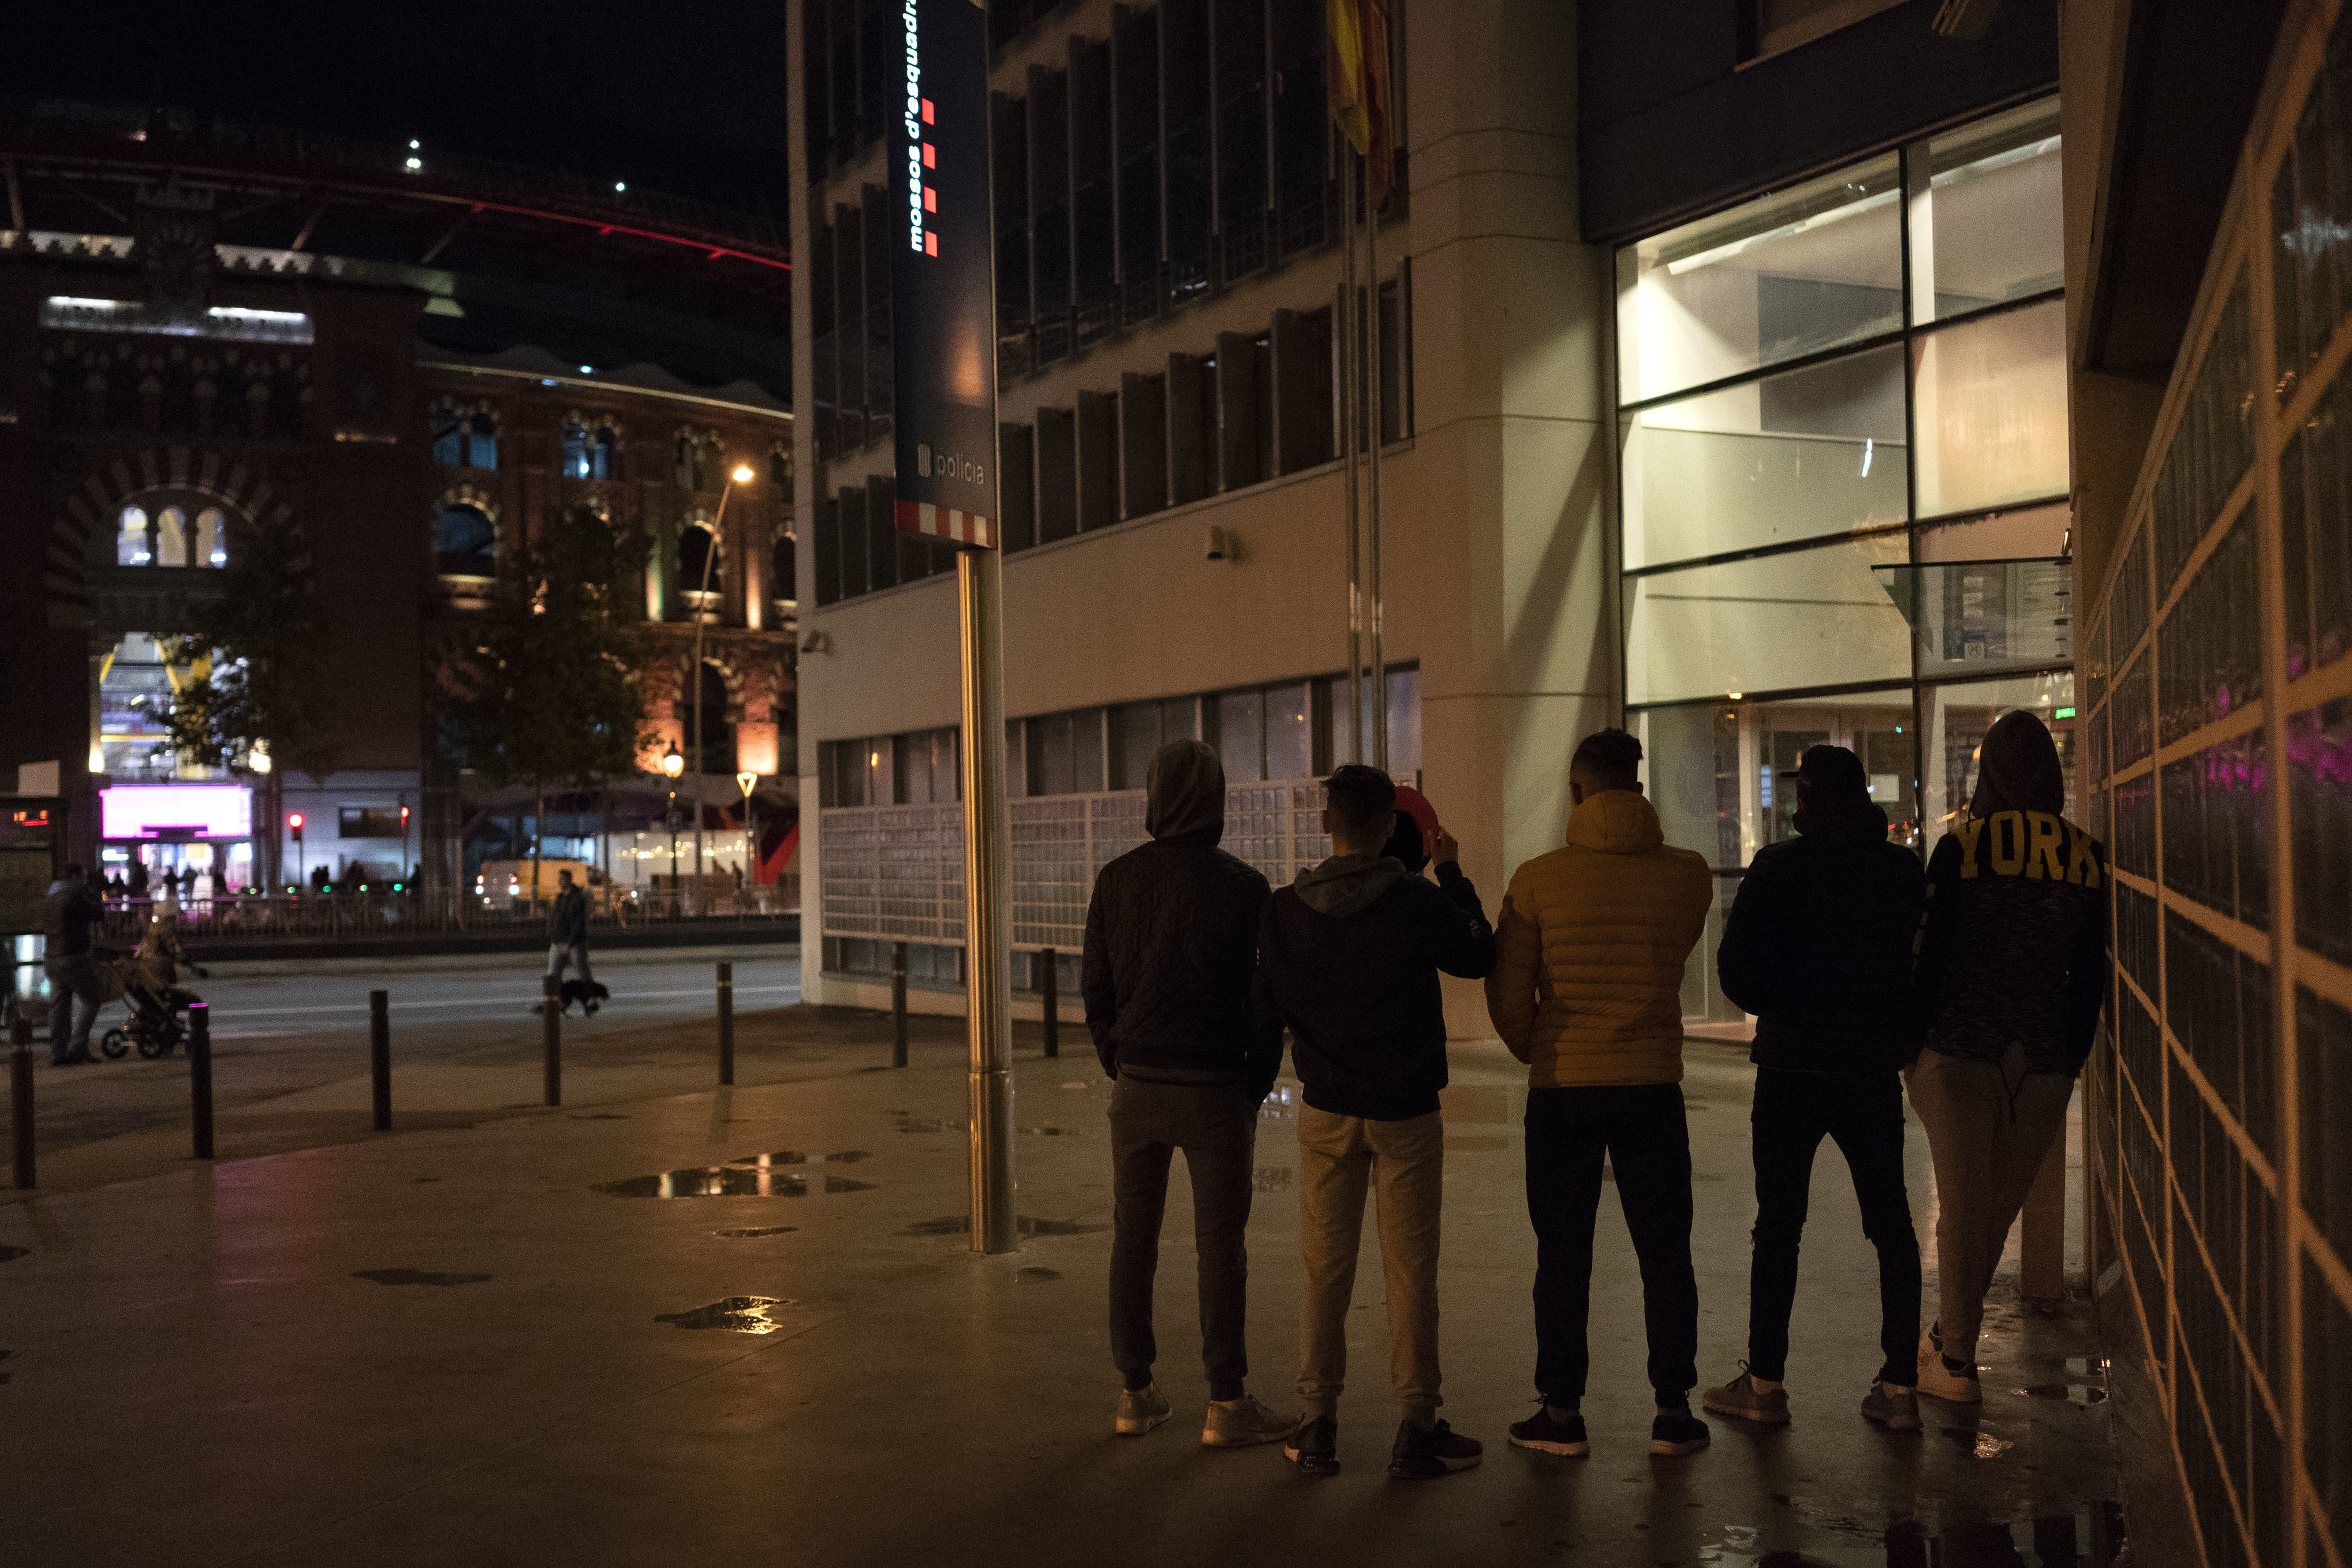 In this Nov. 9, 2018 photo, unaccompanied minors from Morocco seeking shelter, stand outside a police station in Barcelona, Spain. Slouched on a bench at a Barcelona police station, five teenagers waited patiently on a recent Friday evening to find out where they would sleep that night: a shelter for young migrants or on that bench. (AP Photo/Renata Brito)